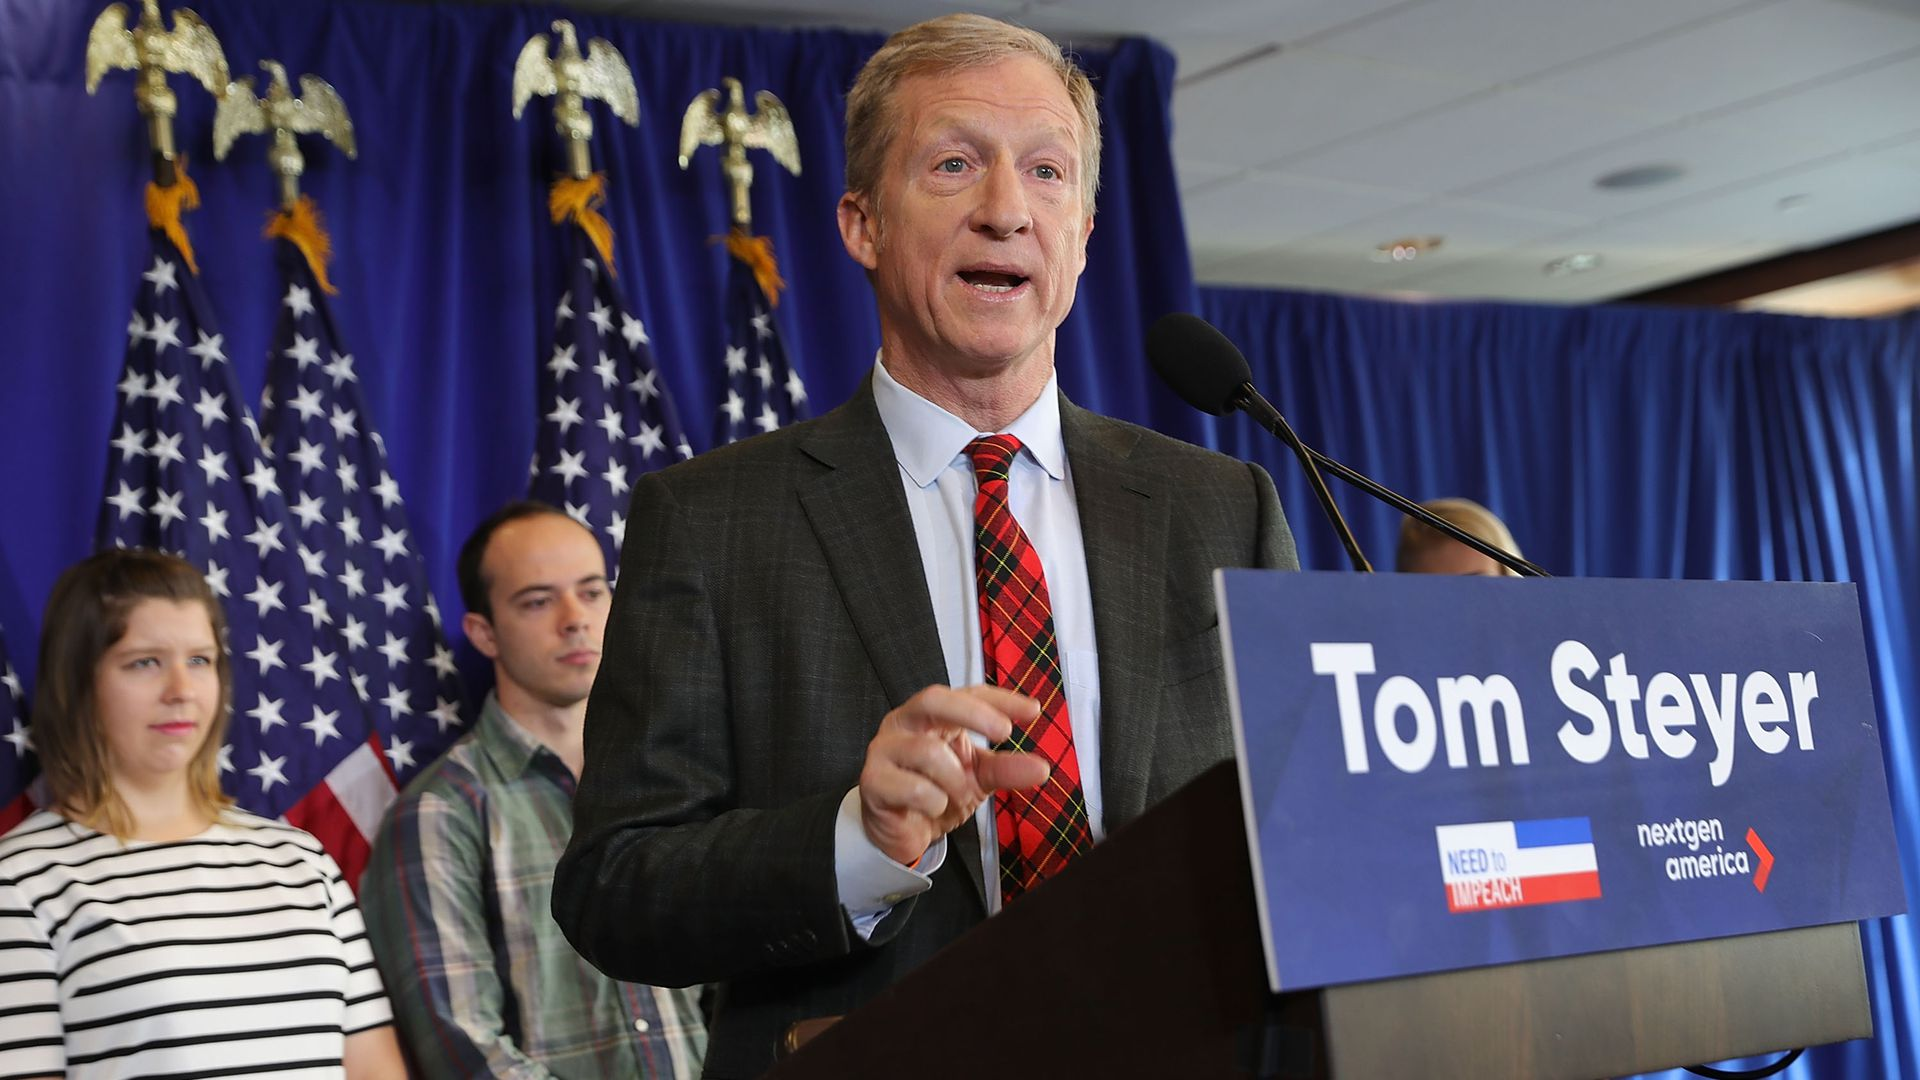 Tom Steyer on the issues, in under 500 words